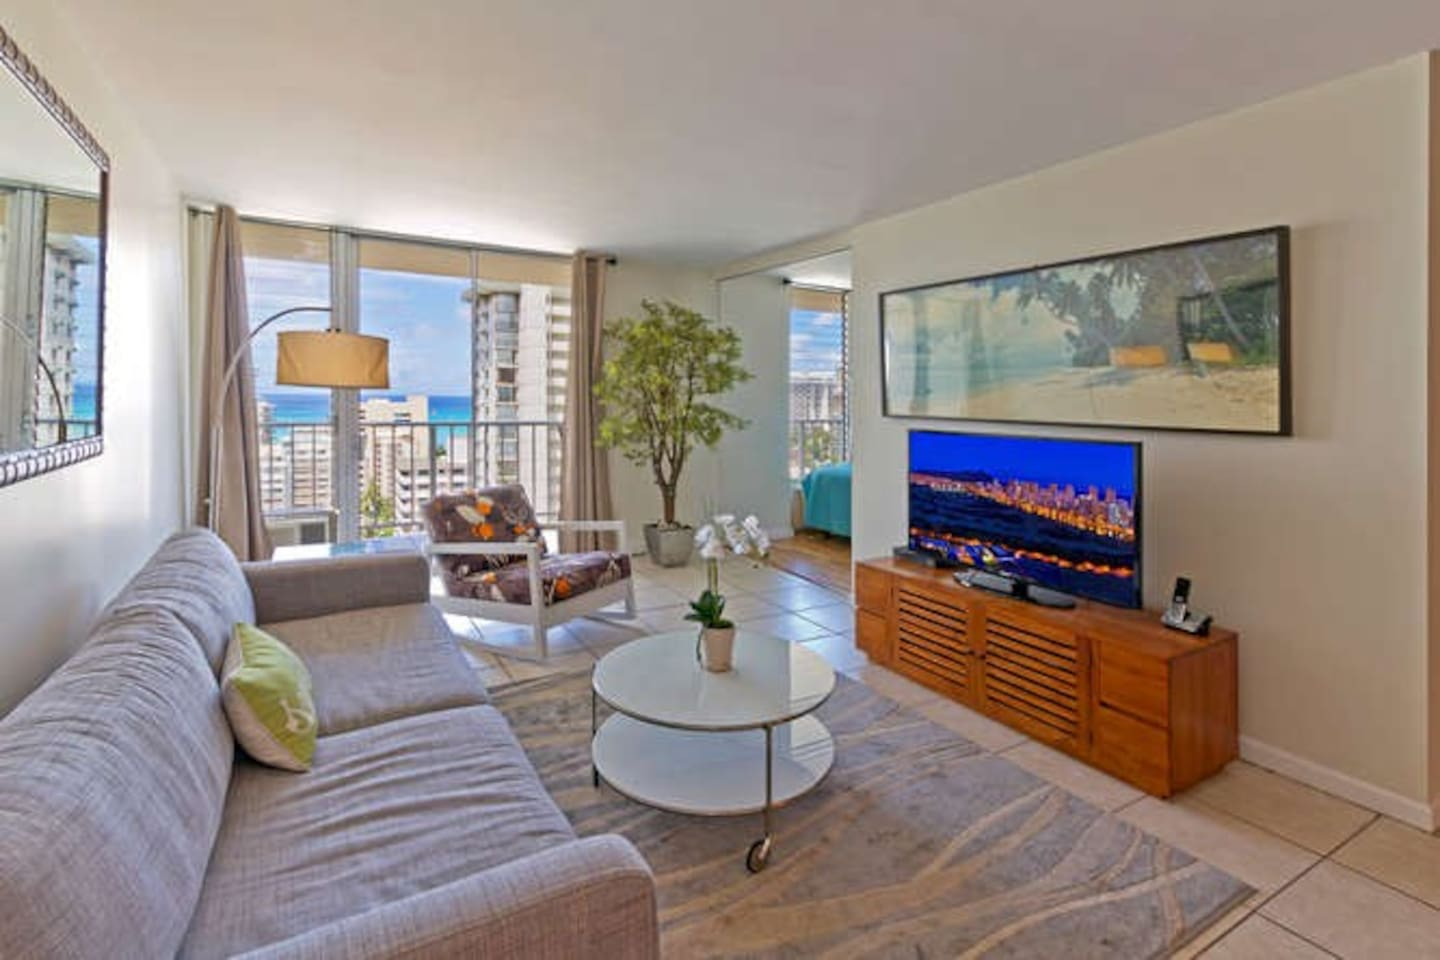 Open and spacious, with classic tropical art and hardwood furnishings.